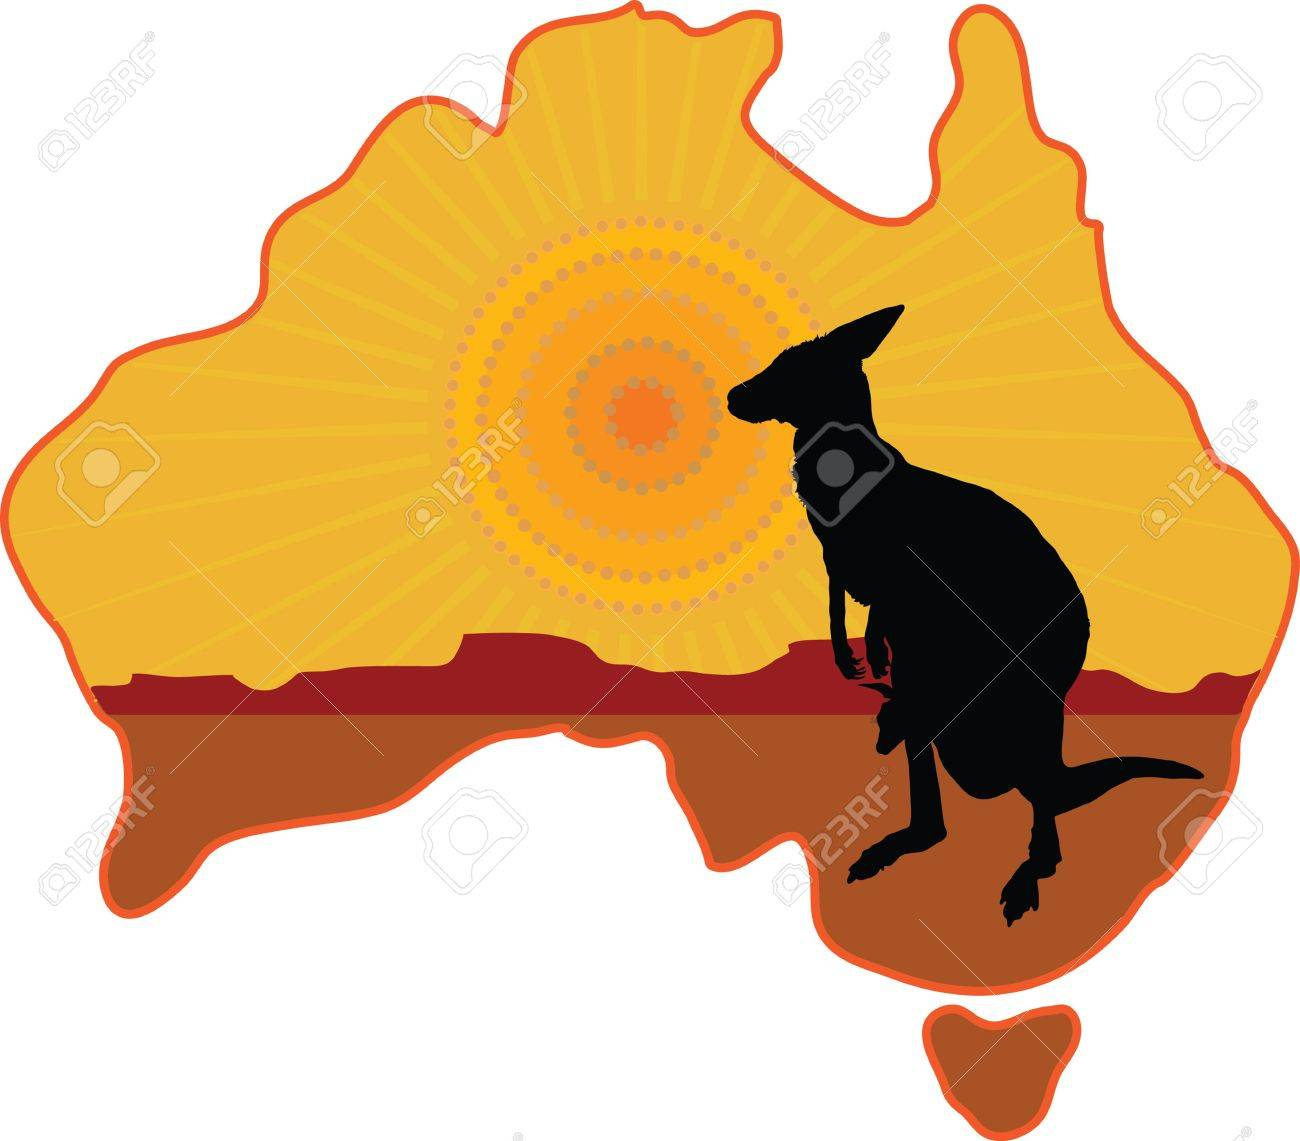 A Stylized Map Of Australia With A Silhouette Of A Kangaroo With - Australia map kangaroo